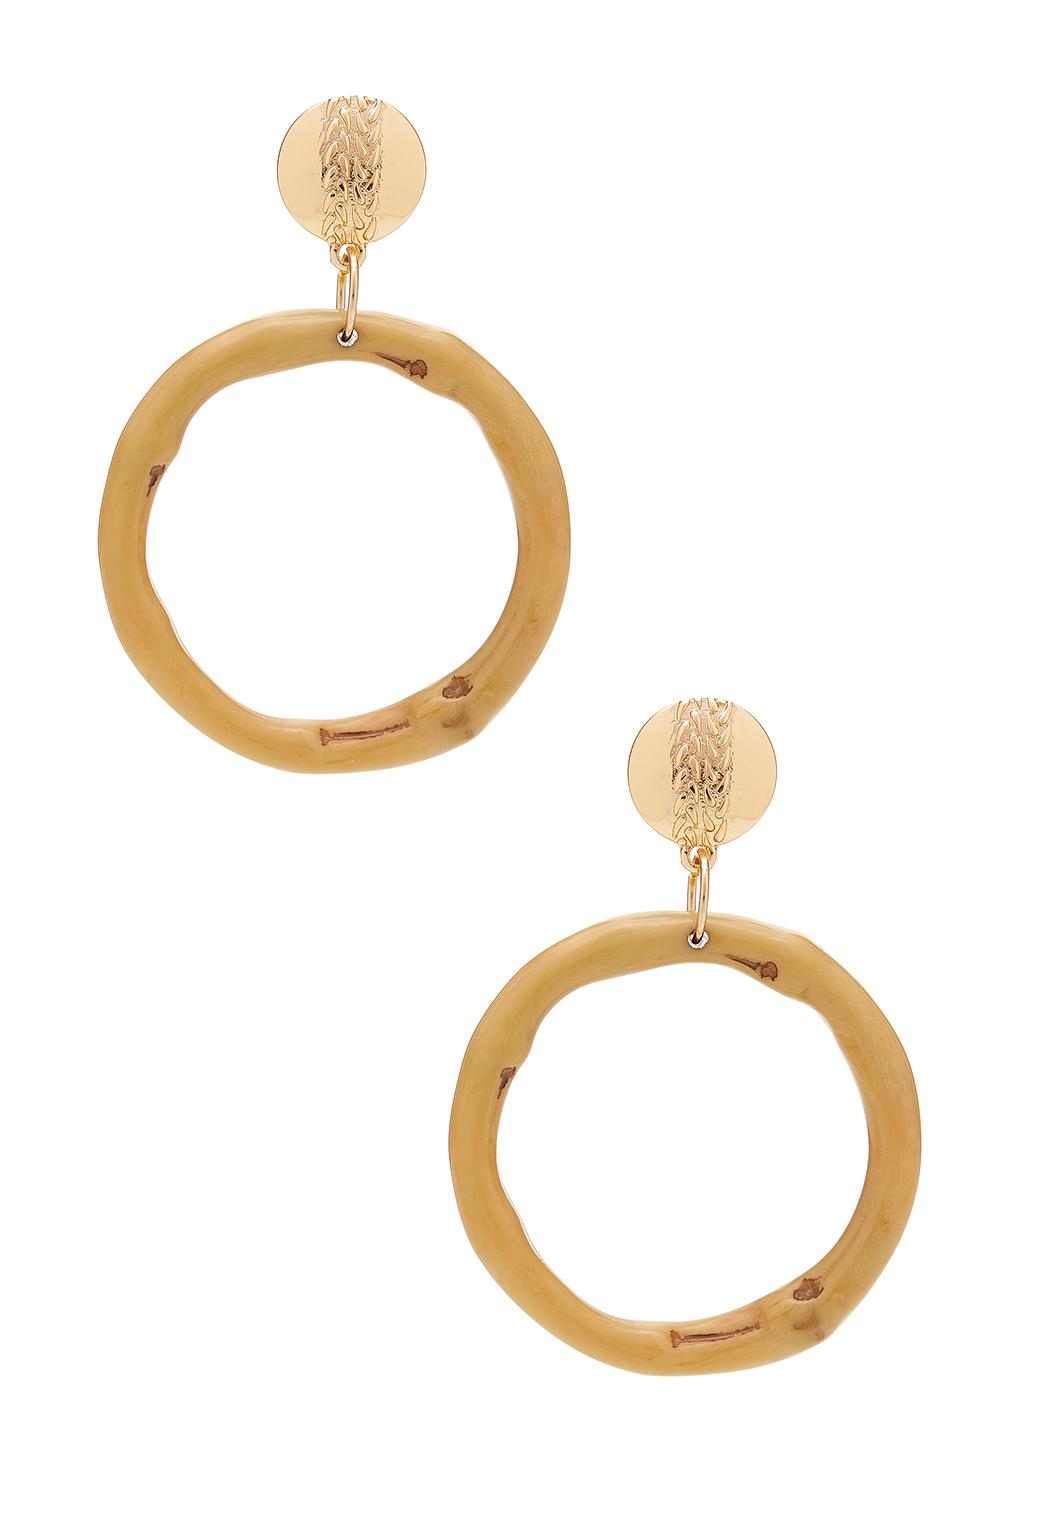 Bamboo Ring Earrings